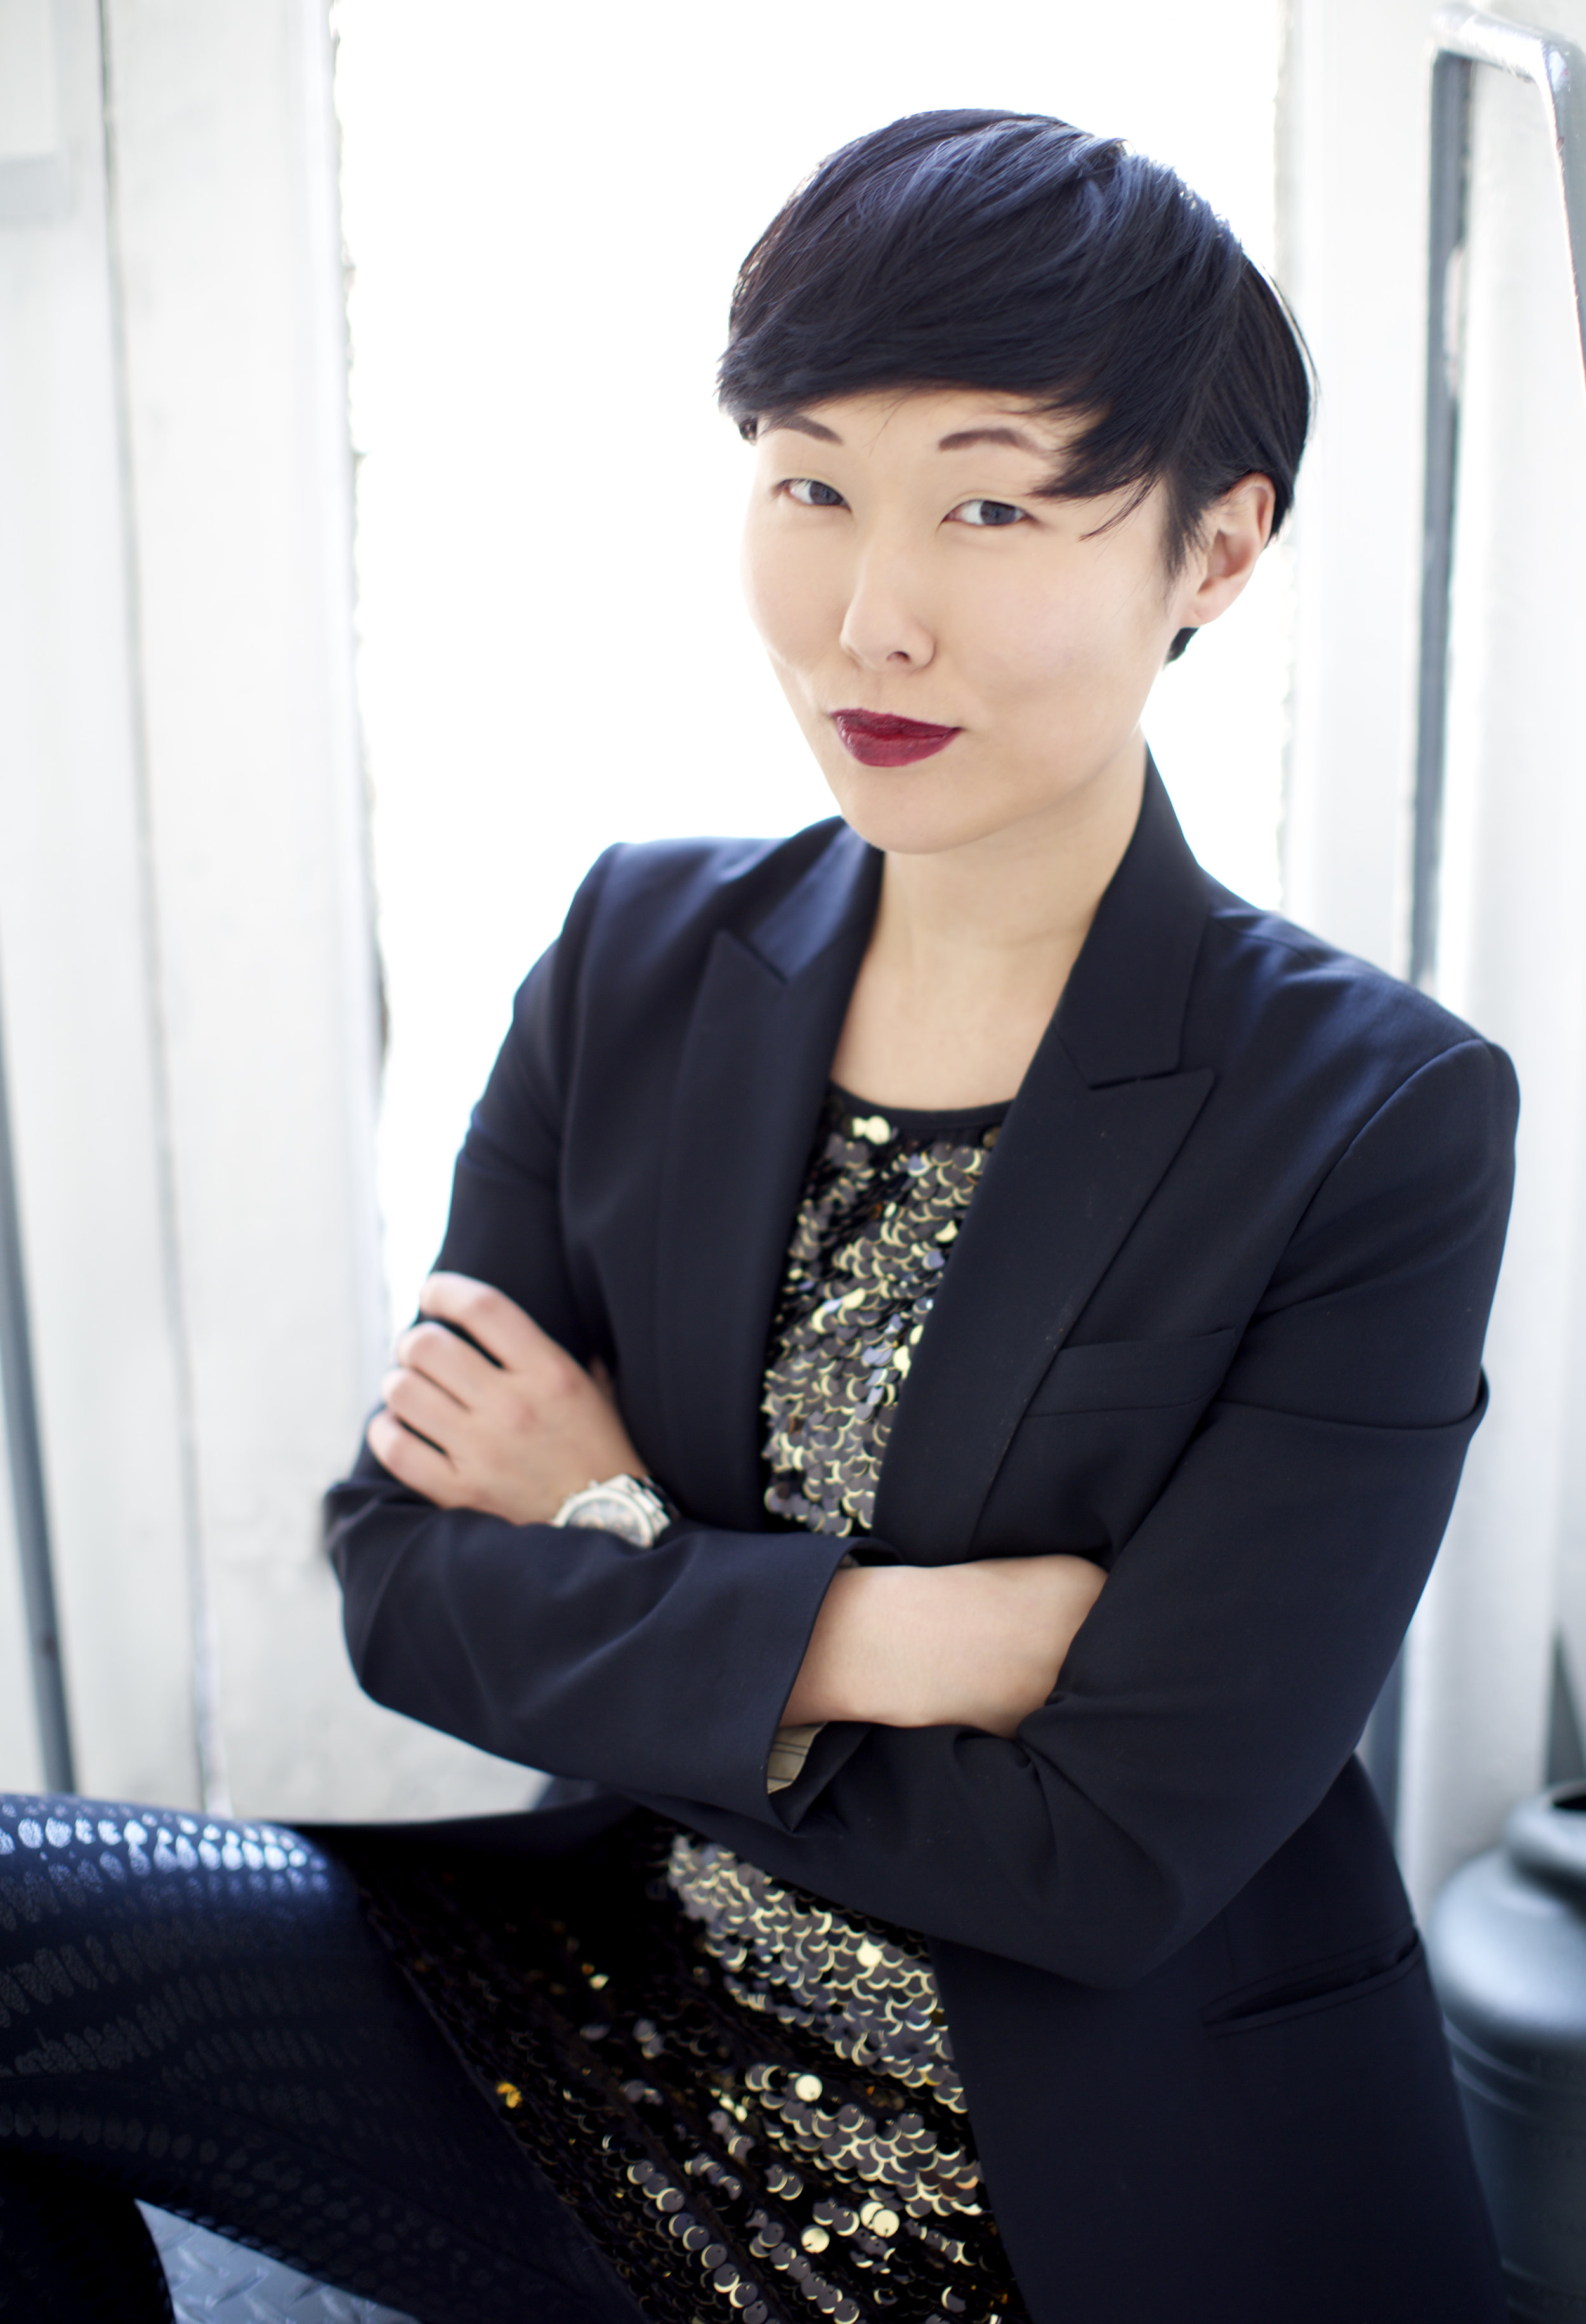 cleo gray - is an actor, producer, and activist born in South Korea and raised in New Jersey. She was a member of The Flea Theater's resident acting company (2011-2016), The Bats, and was a co-producer of the hit late night series #serials@theflea (2014-16) alongside Crystal Arnette. Cleo's credits at The Flea include the World premieres of a The Place We Builtby Sarah Gancher directed by Danya Taymor;a cautionary tailby christopher oscar peña; Thomas Bradshaw's JOB(both directed by Benjamin Kamine), and Qui Nguyen's She Kills Monsters(directed by Robert Ross Parker), as well as the NYC premieres of the critically acclaimed and Drama Desk nominated These Seven Sicknessesby Sean Graney and Amy Freed's Restoration Comedy(both Drama Desk nominations for dir. Ed Sylvanus Iskandar). She has also appeared at the Flea in workshops and readings for Robert Askins, A. Rey Pamatmat, Krista Knight/Barry Brinegar, Tommy Smith, Anson Mount and Lauren Yee as well as 50+ short plays for #serials. Other New York credits include the World Premiere of Ma-Yi Theatre Co's Soldier Xby Rehana Lew Mirza, directed by Lucie Tiberghien; Ivy Theatre Co.'s DONKEY PUNCHby Micheline Auger (Soho Playhouse),Empire Travel Agency(Woodshed Collective), Youngblood's Asking For Trouble ('12 – '16) @ The Ensemble Studio Theatre) as well as numerous workshops and readings with Ma-Yi, EST, Woodshed Collective, Studio 42, Labyrinth, Clubbed Thumb, Lark Play Development, New Georges, Ars Nova, Target Margin, New Dramatists and the Jewish Plays Project. BFA in Acting from Montclair State University.